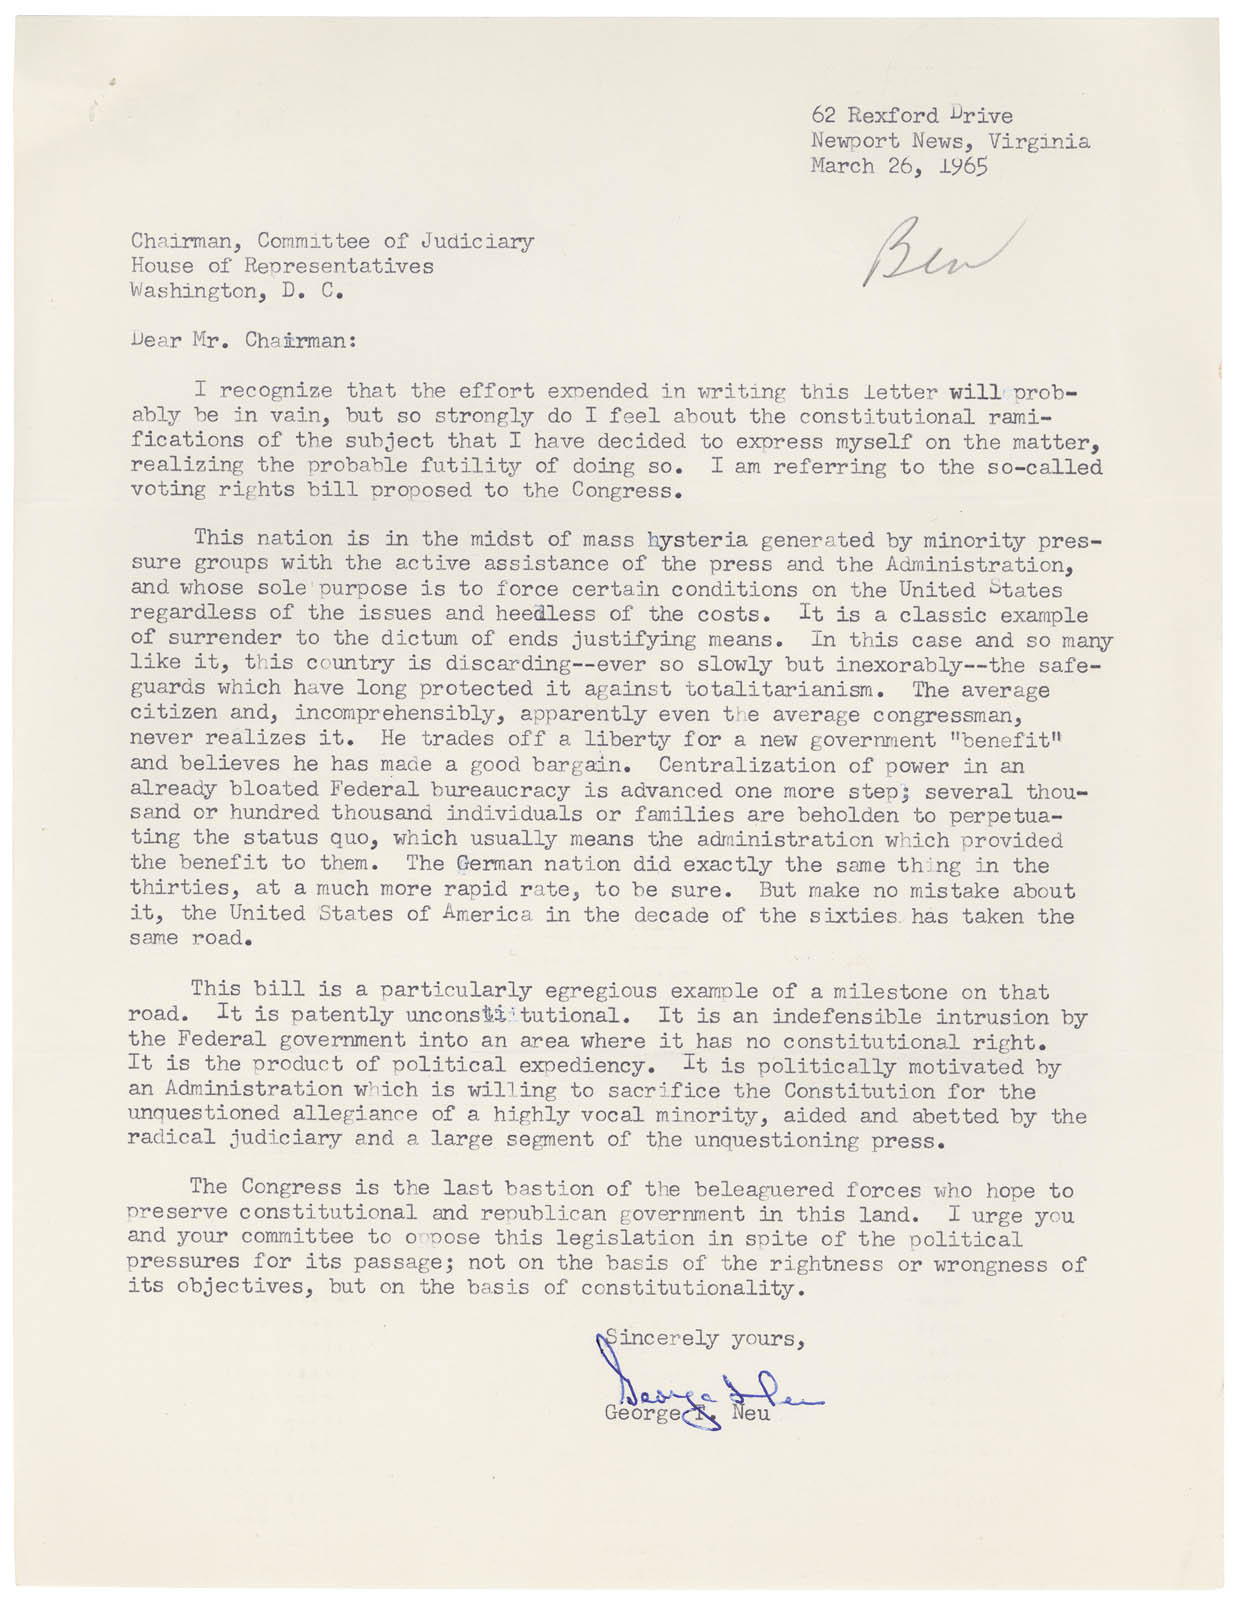 Letter from George Neu to the Chairman of the Judiciary Committee against the Voting Rights Act of 1965, March 26, 1965, Records of the U.S. House of Representatives. National Archives Identifier 2173238